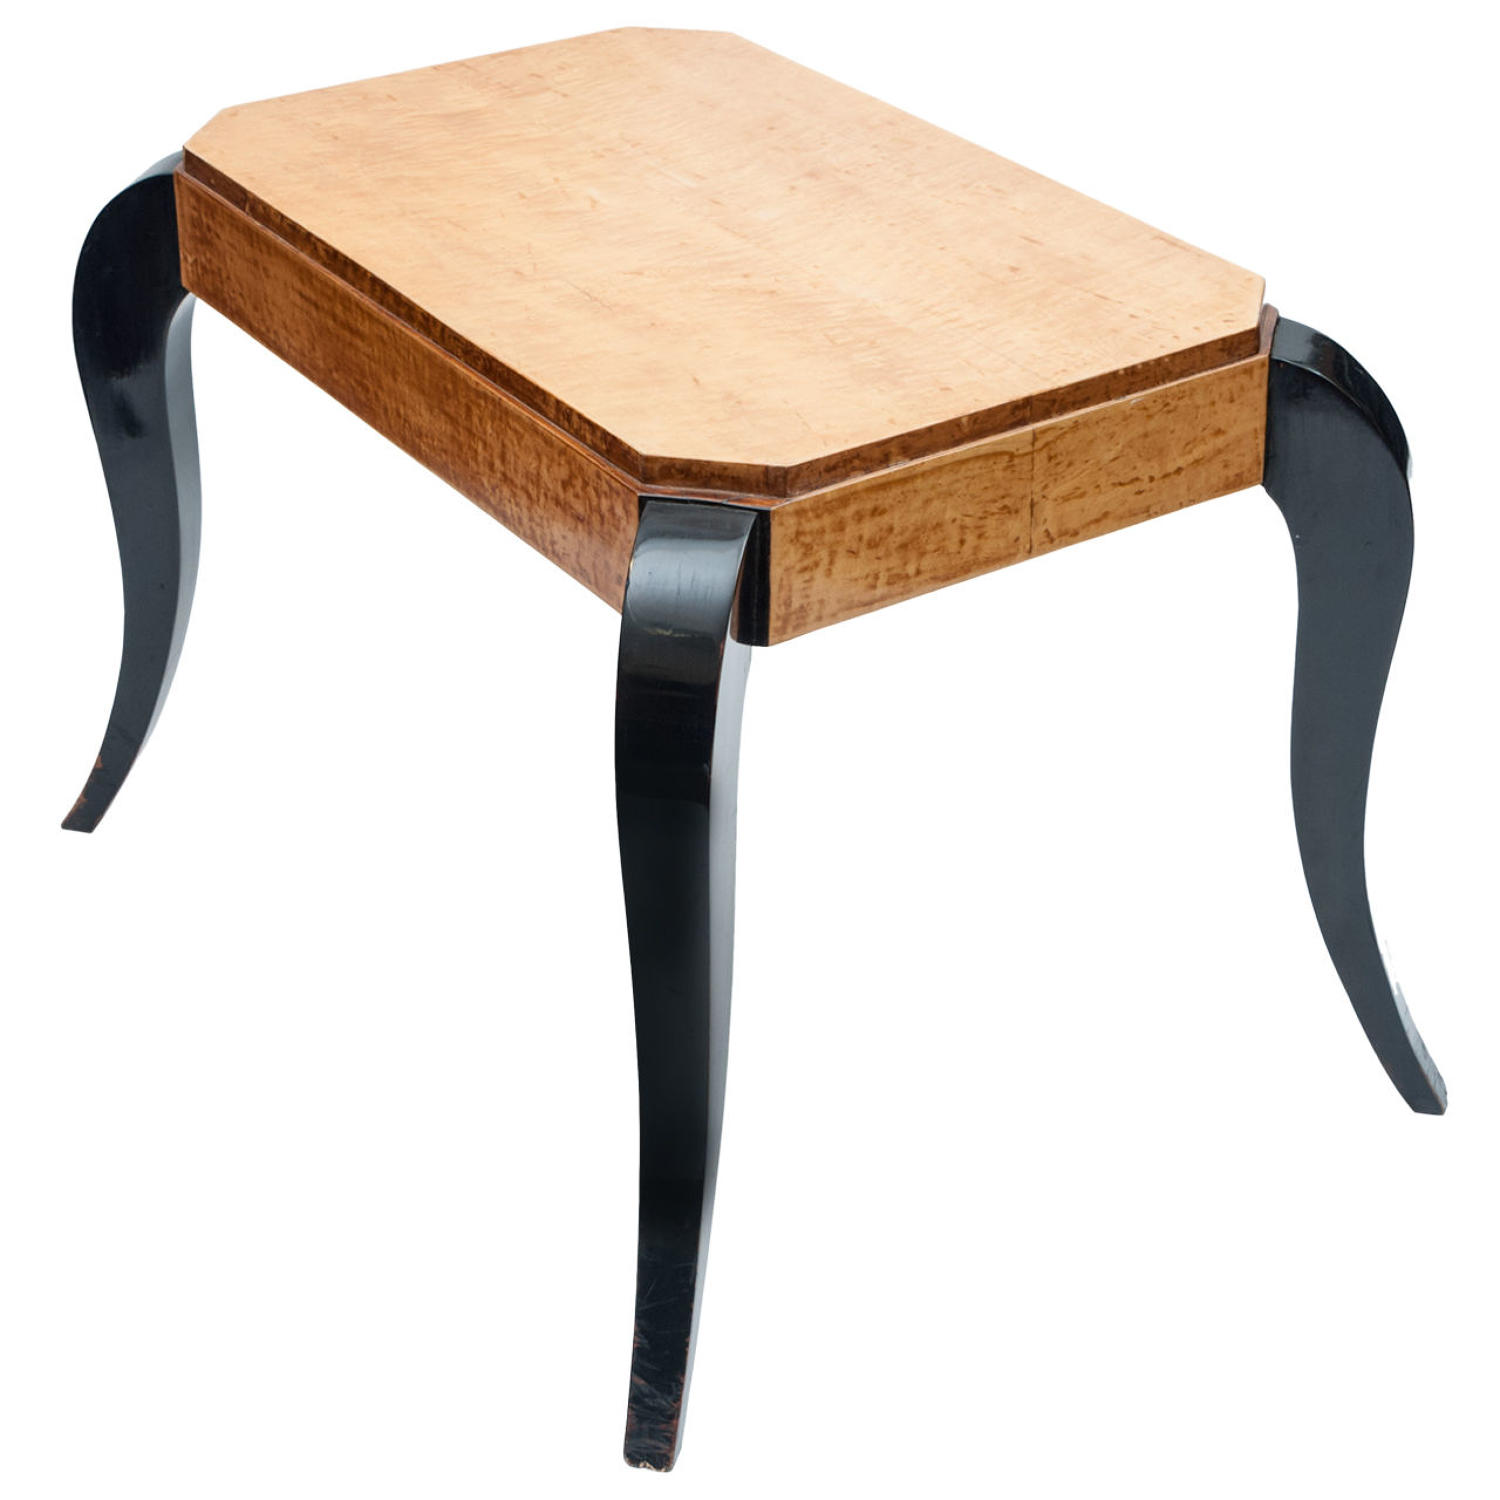 Art Deco birds eye maple and ebonised center table